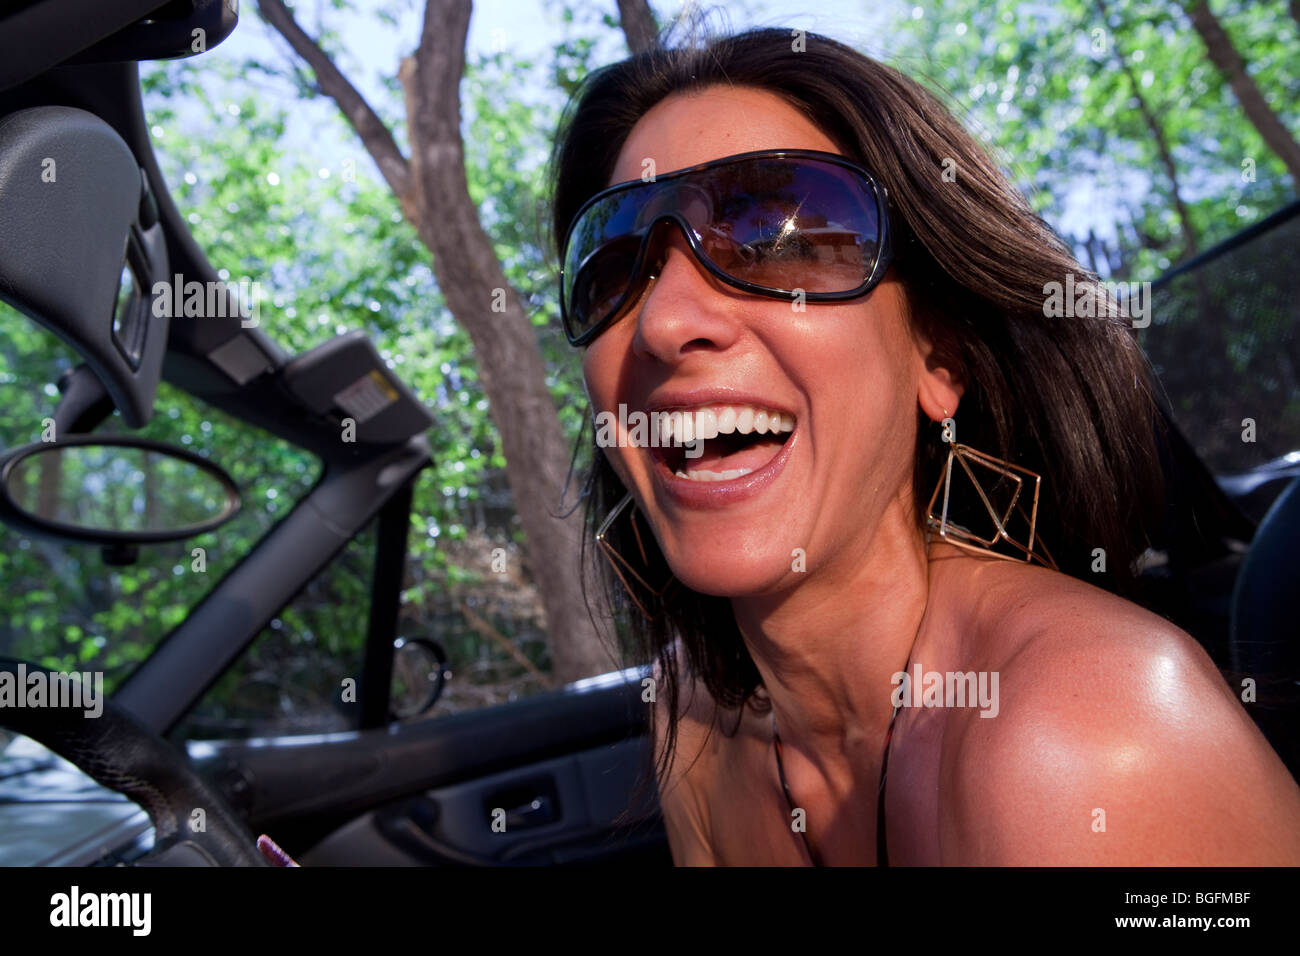 An attractive young woman in sunglasses driving a convertible - Stock Image